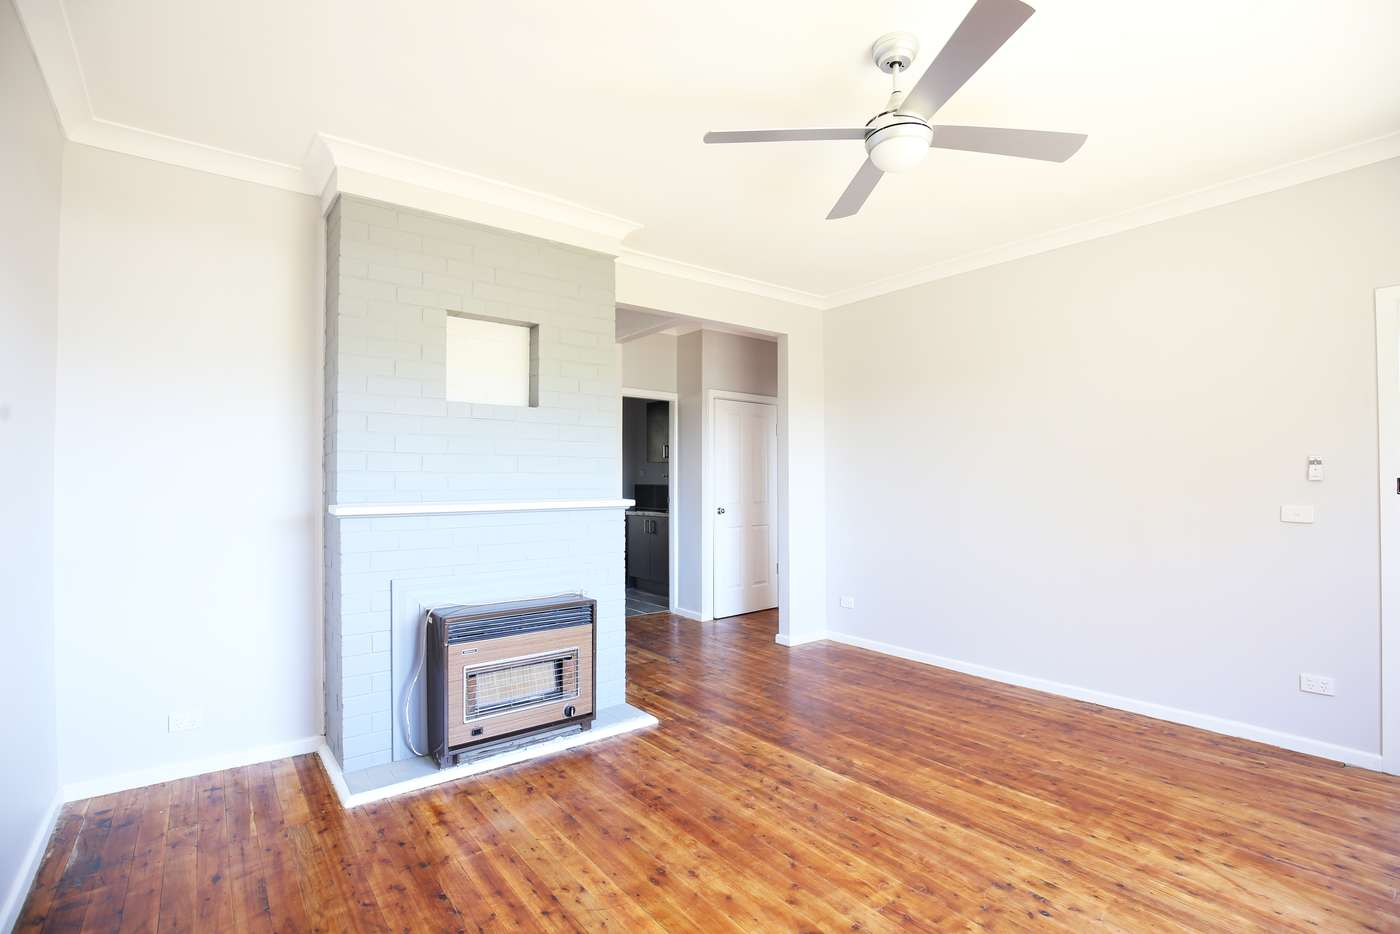 Main view of Homely house listing, 17 Lewins Street, Bathurst NSW 2795